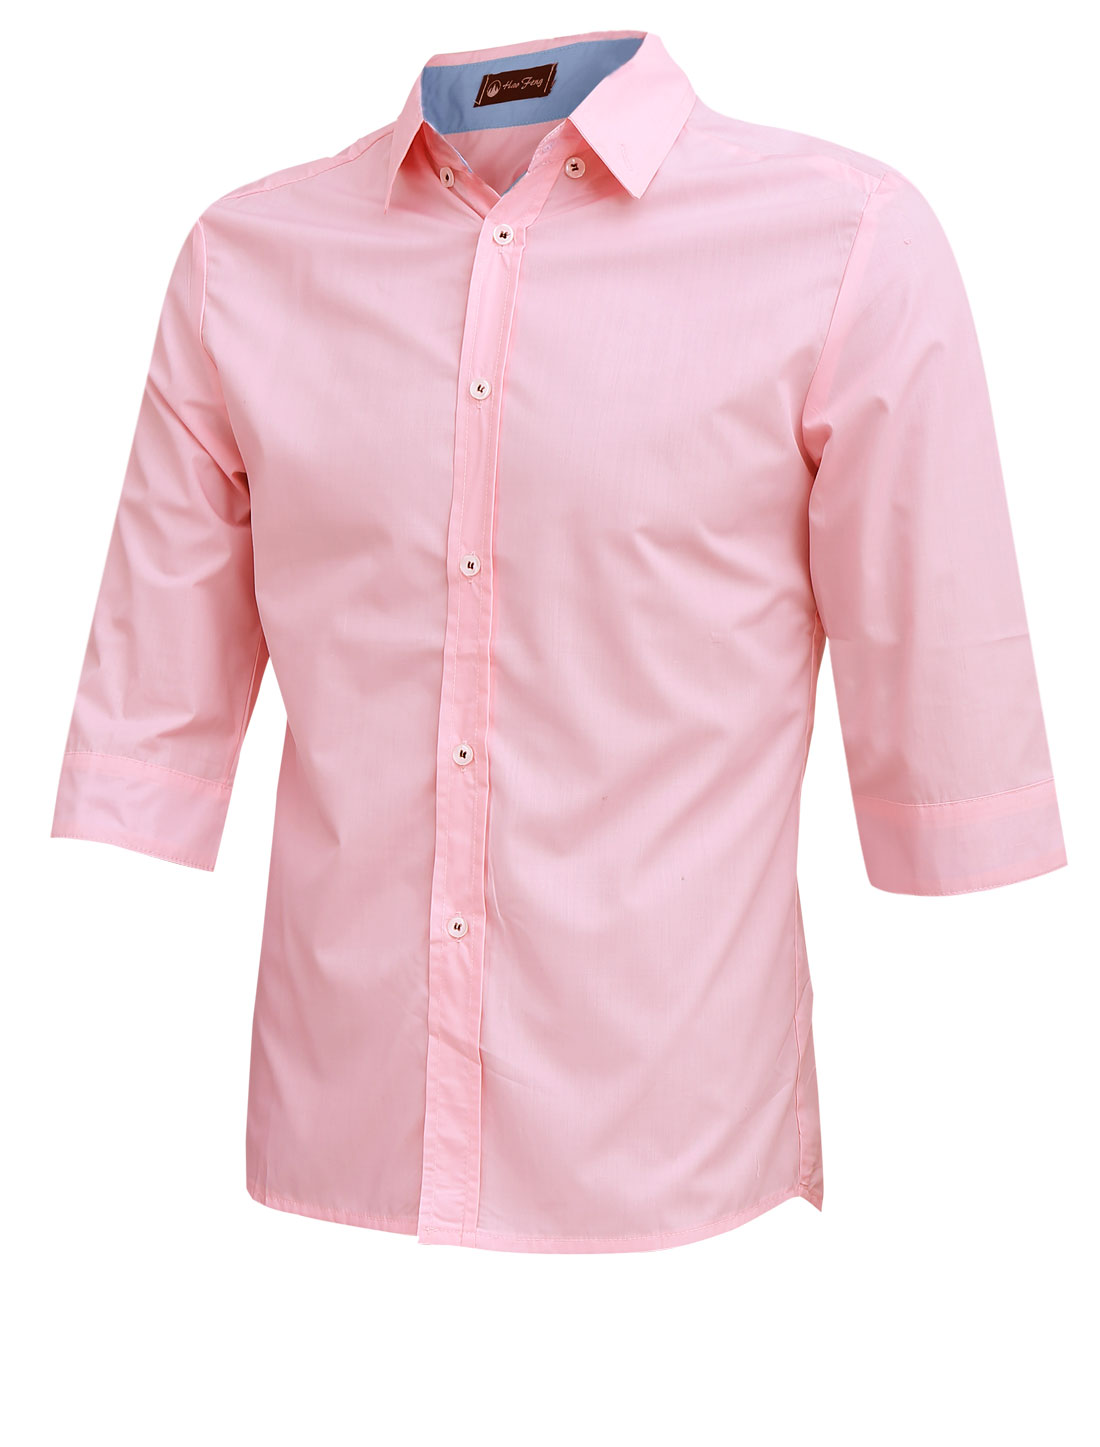 Men Point Collar Button Up 3/4 Sleeve Casual Shirt Pink M